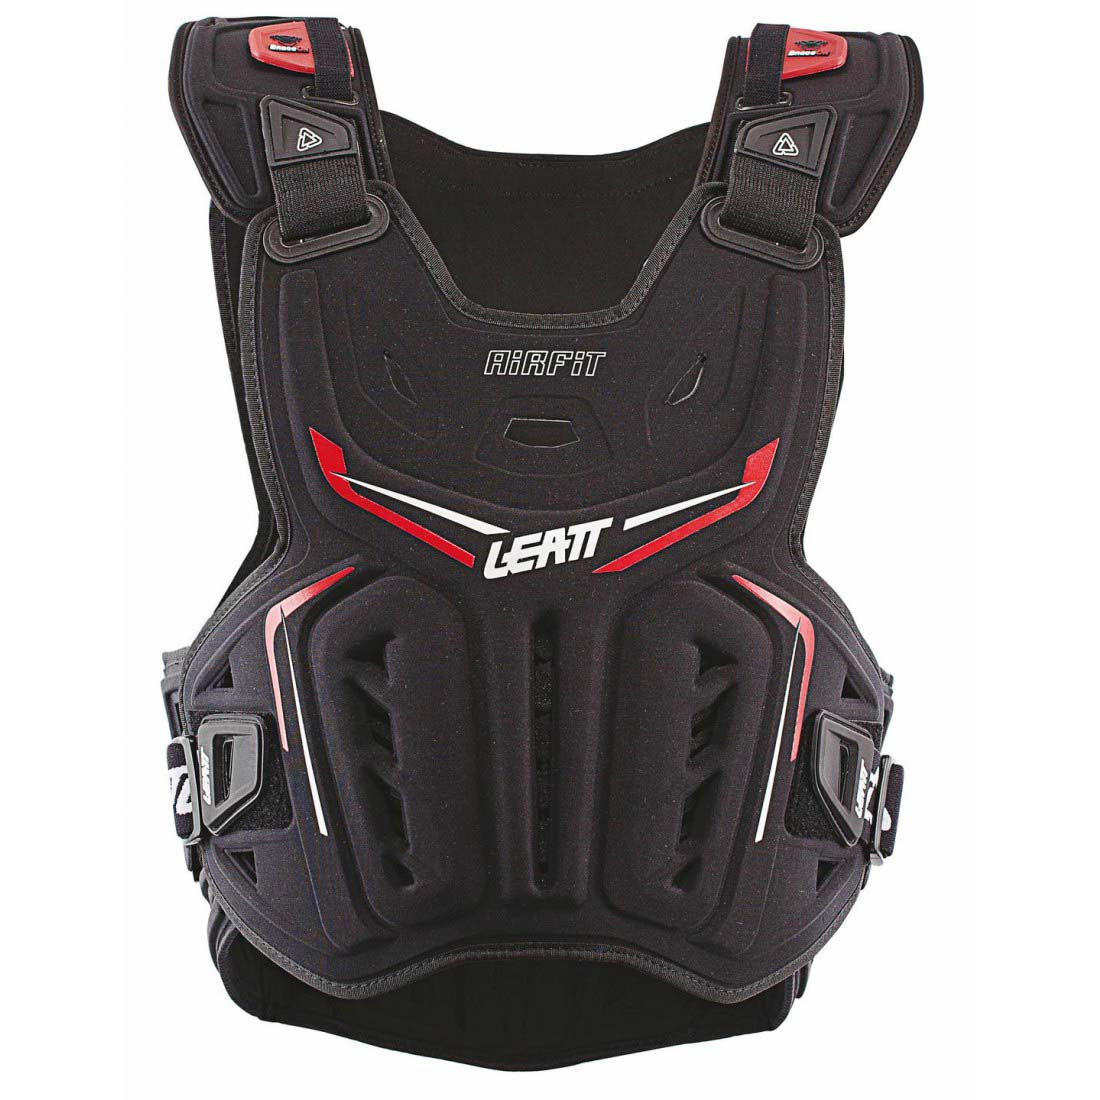 Leatt Chest Protector 3DF AirFit Black/Red защитный жилет